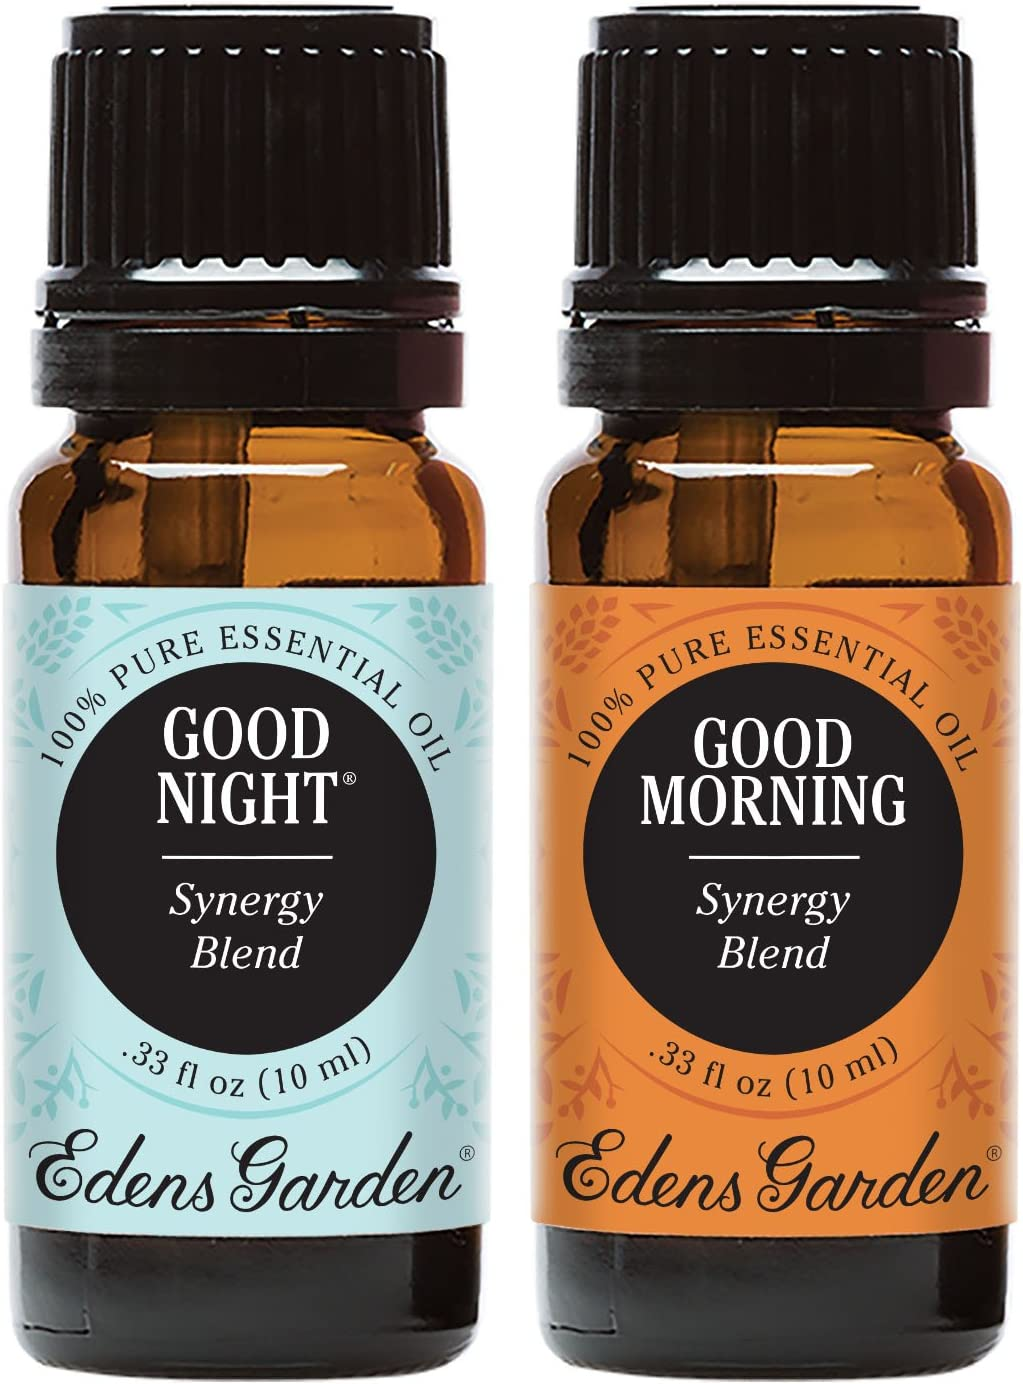 Edens Garden Good Morning & Good Night Essential Oil Synergy Blend, 100% Pure Therapeutic Grade, 10 ml Value Pack